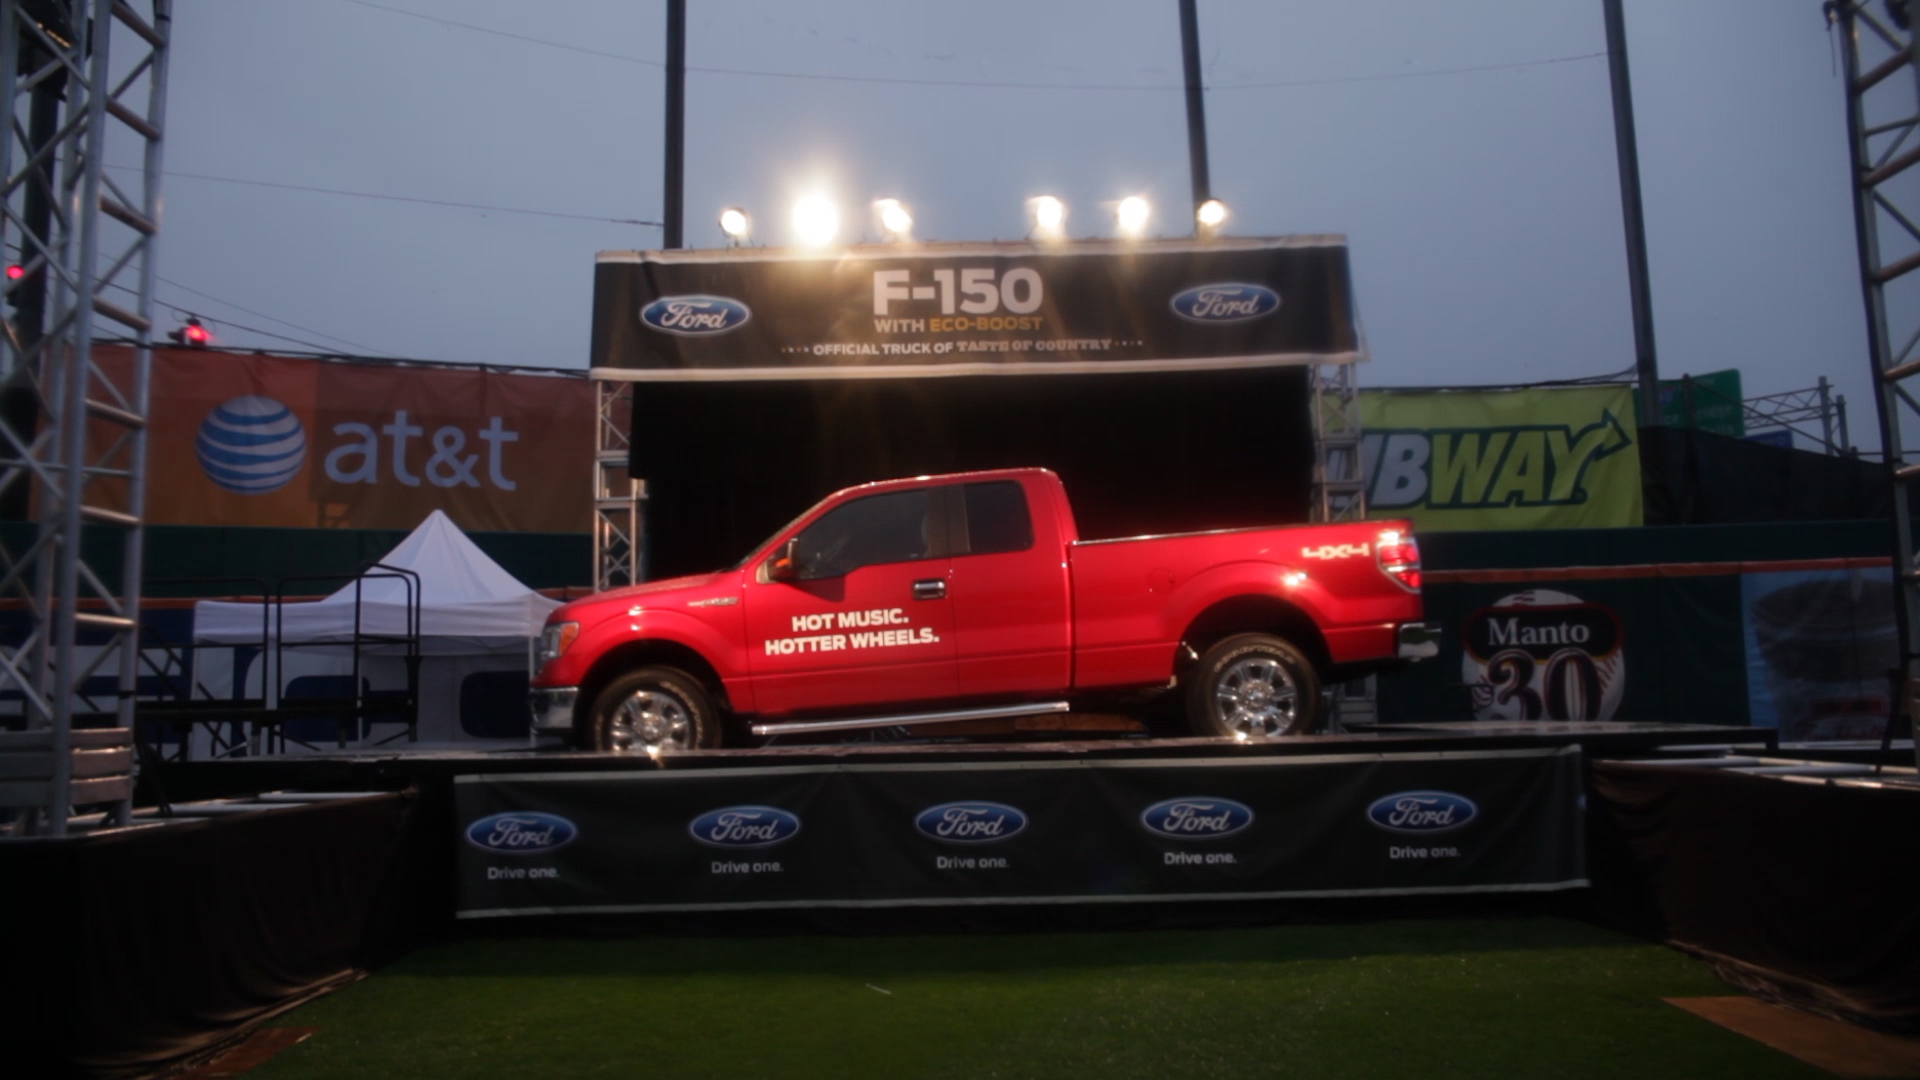 Ford F-150 display at WYRK Taste of Country concert